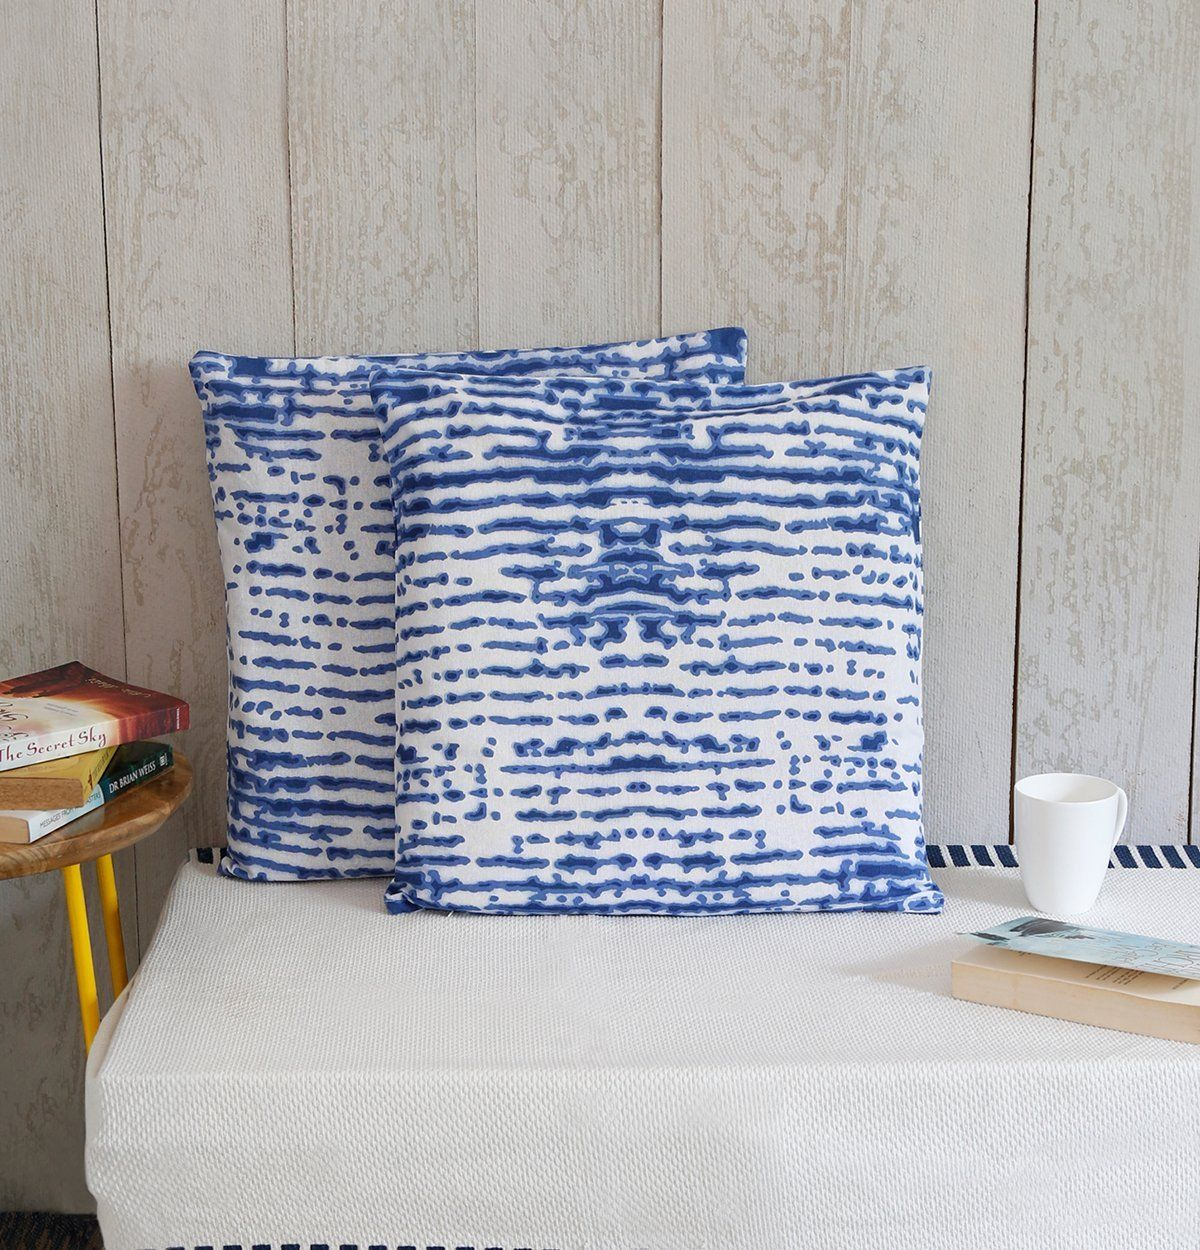 cheap at to look amazing pillows this hair going dog mickey on be throw pillow today trendy is